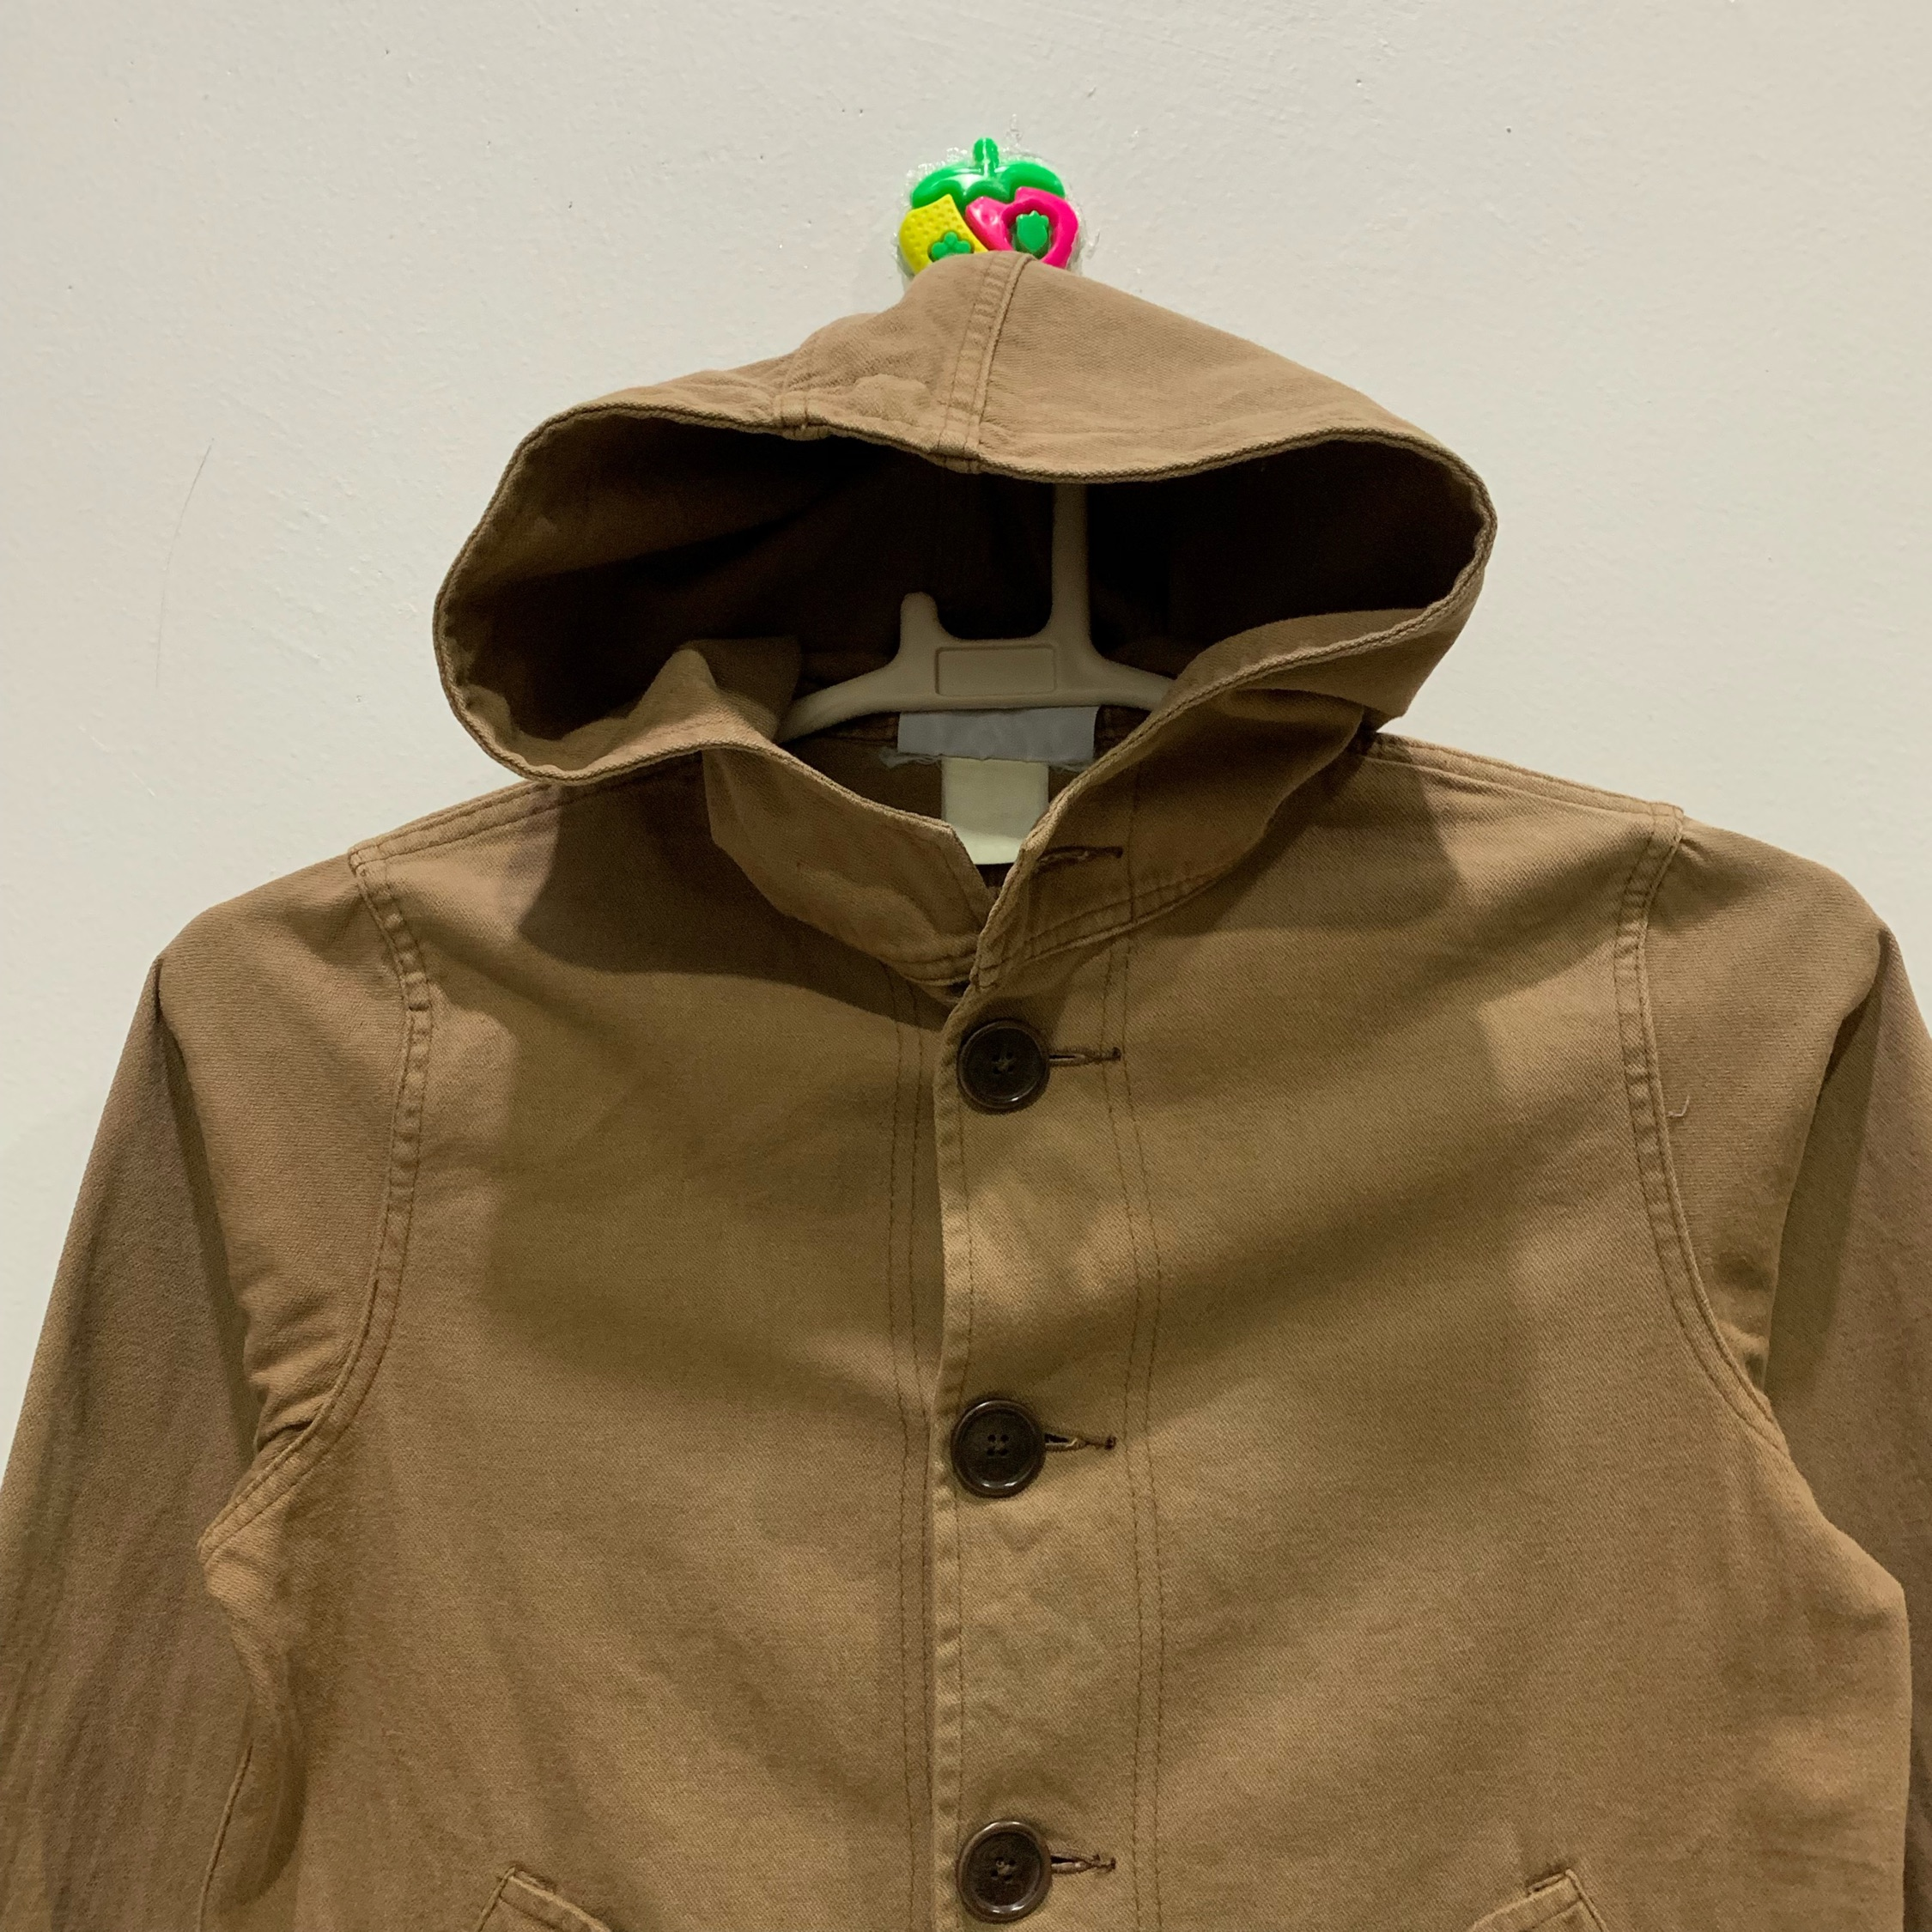 Le Glazik Hoodie Size 34 Fits S Made In France